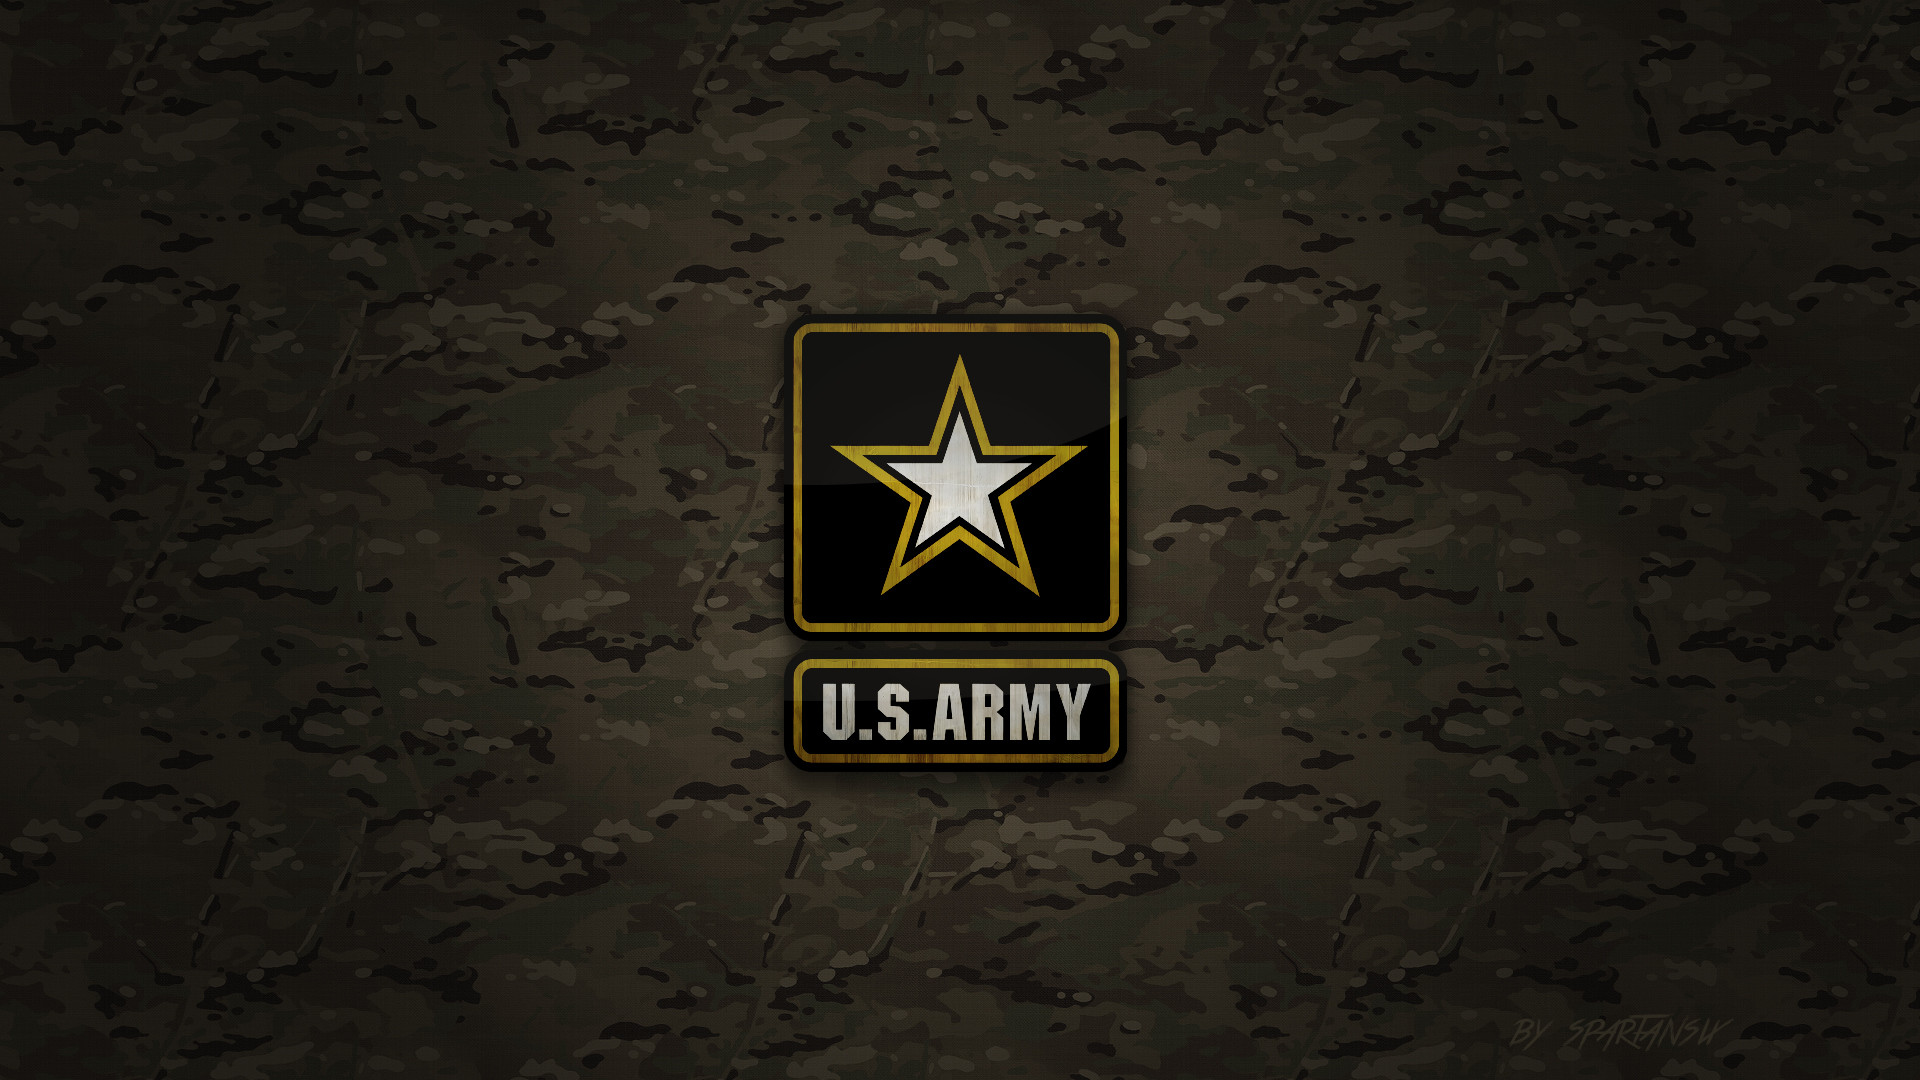 10 Latest United States Army Wallpaper Full Hd 1080p For: US Army Wallpaper Backgrounds ·① WallpaperTag